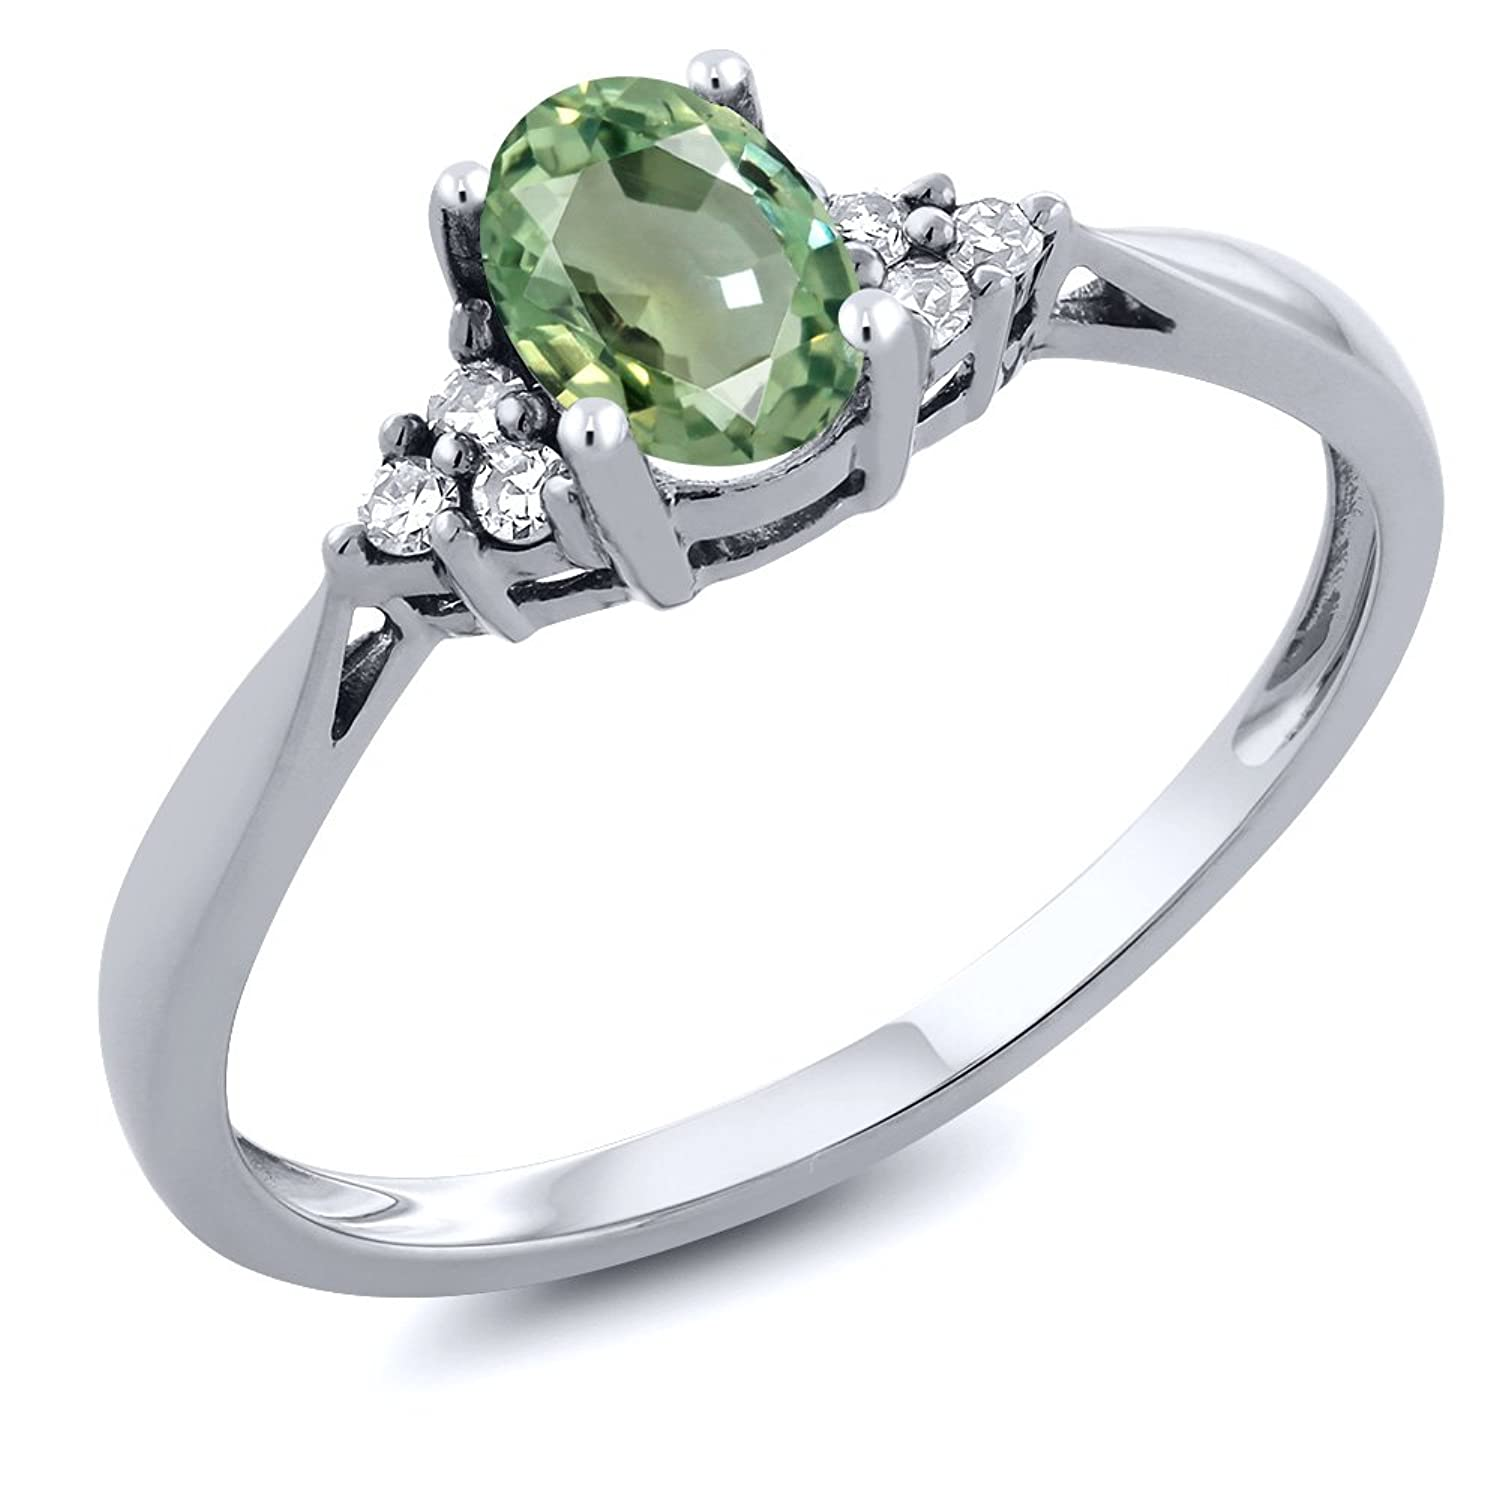 0.55 Ct Oval Green Sapphire and Diamond 14K White Gold Ring